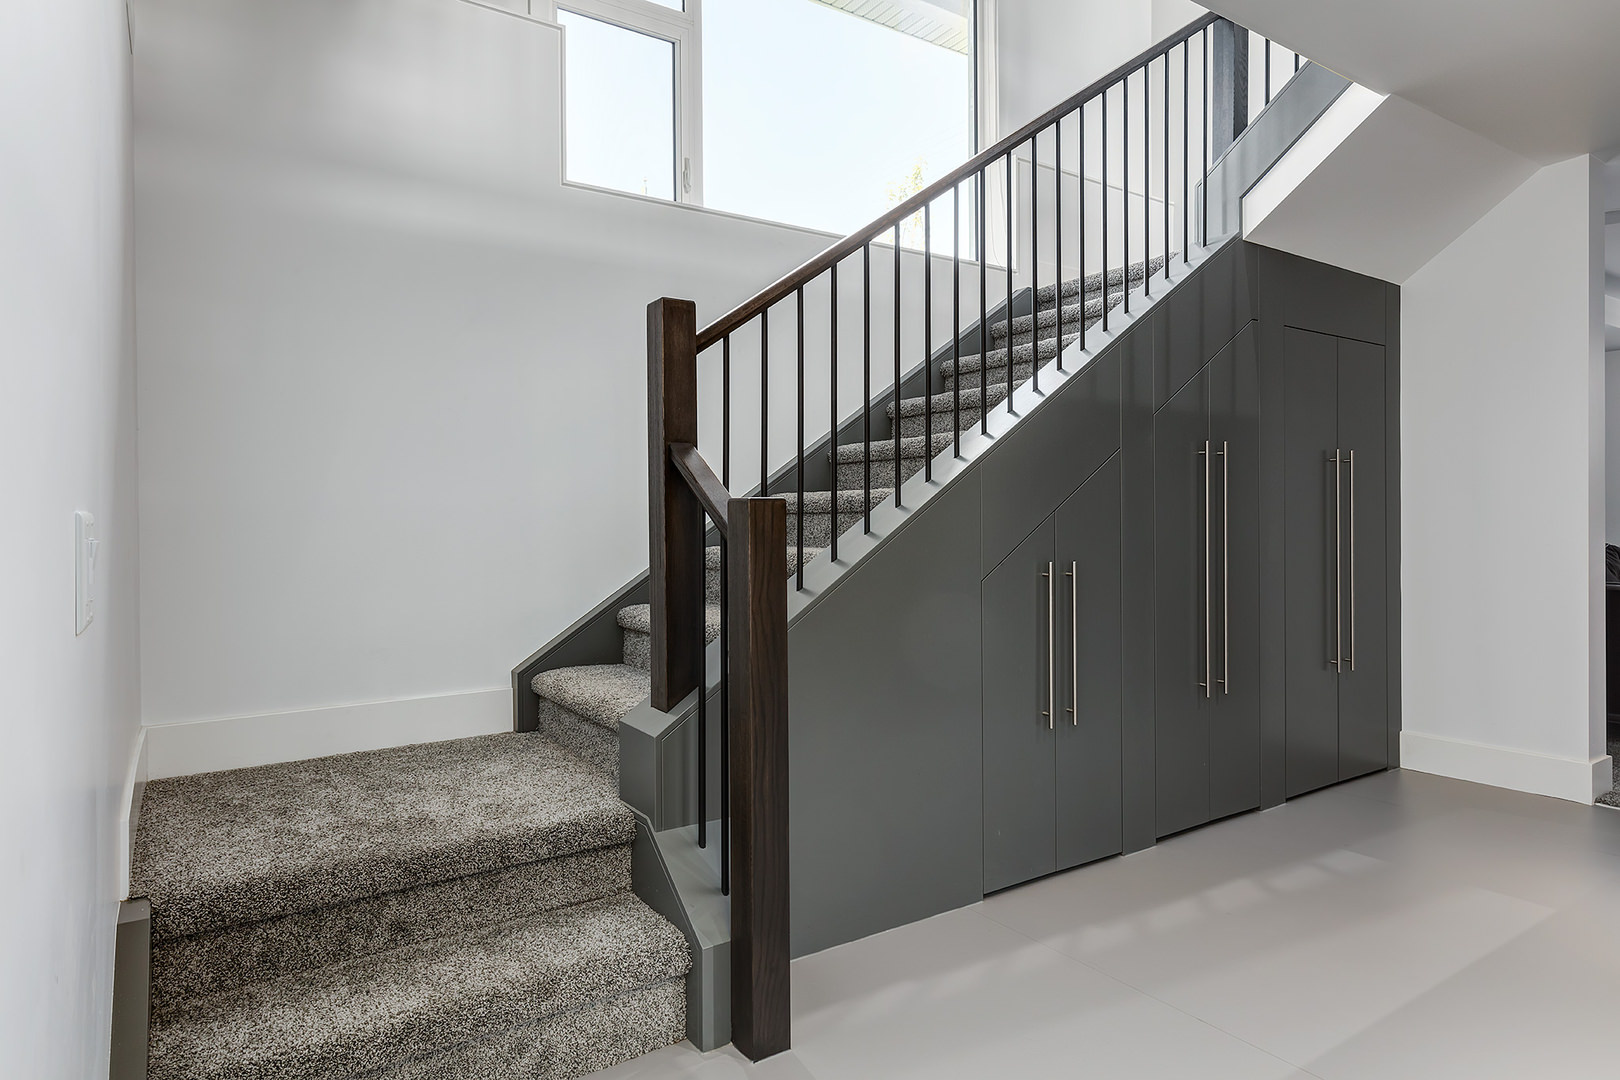 This functional staircase is carpeted with textured grey rug with wooden railings on the side and steel cabinet storage underneath.